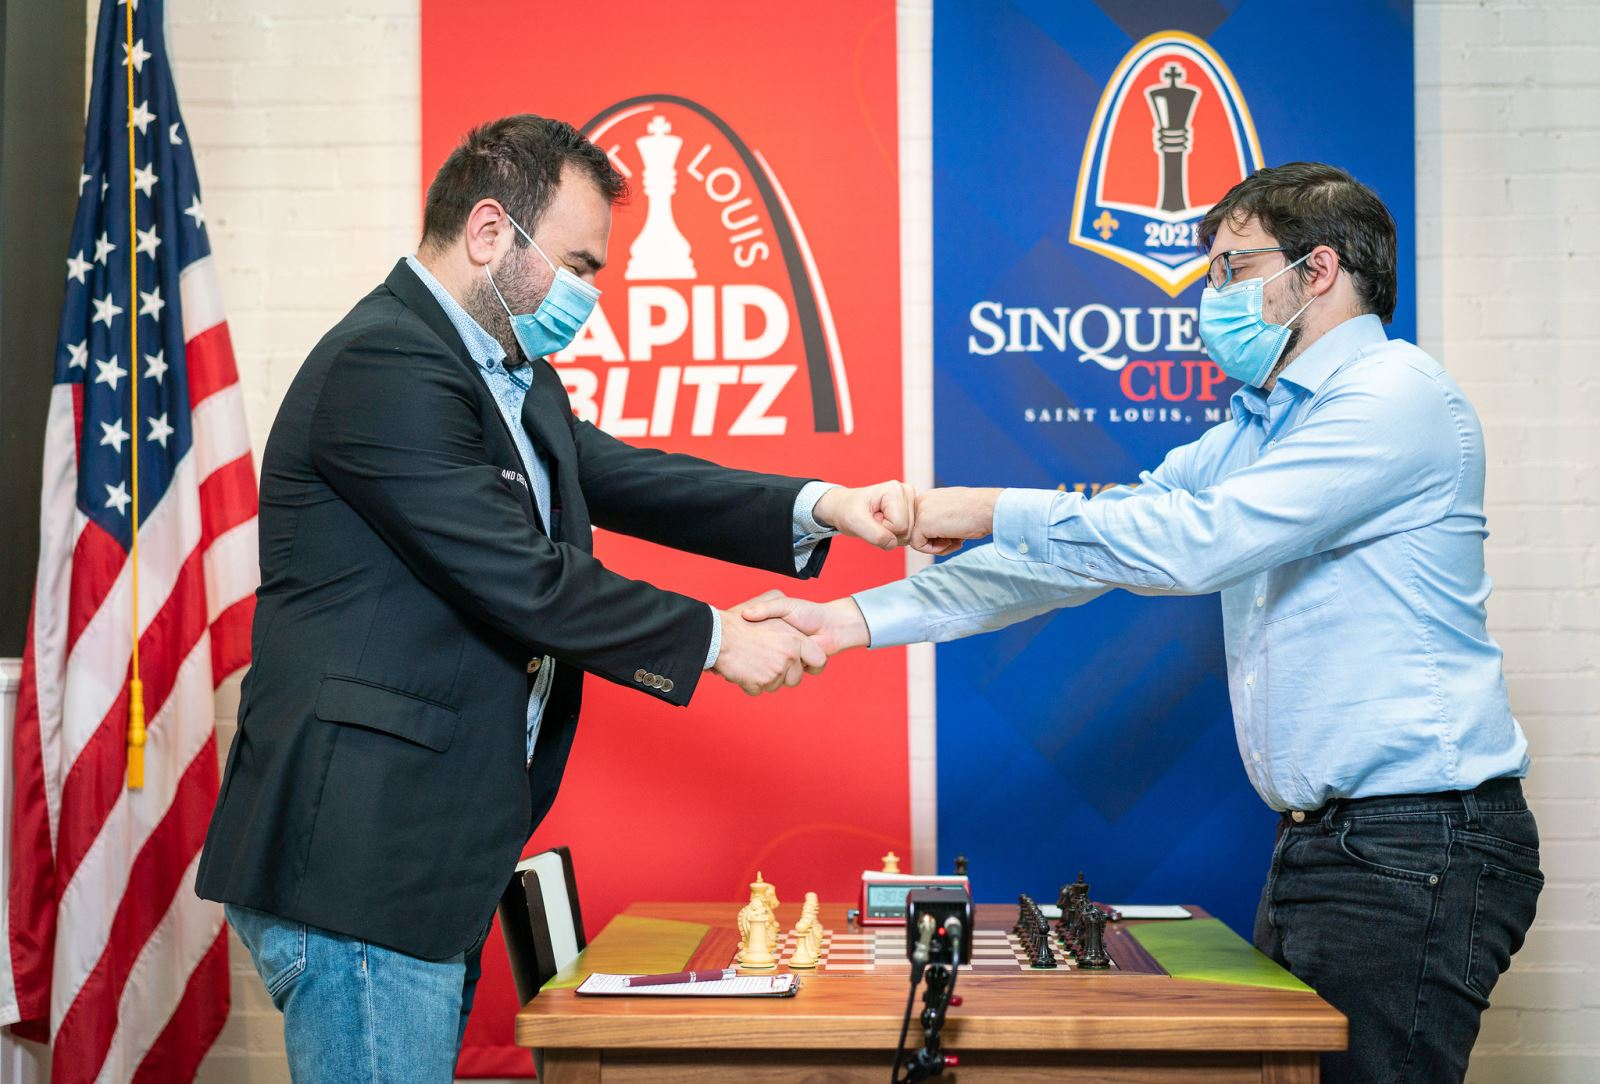 After Canceling The 2020 Season, The Grand Chess Tour Makes Its Move Into 2021